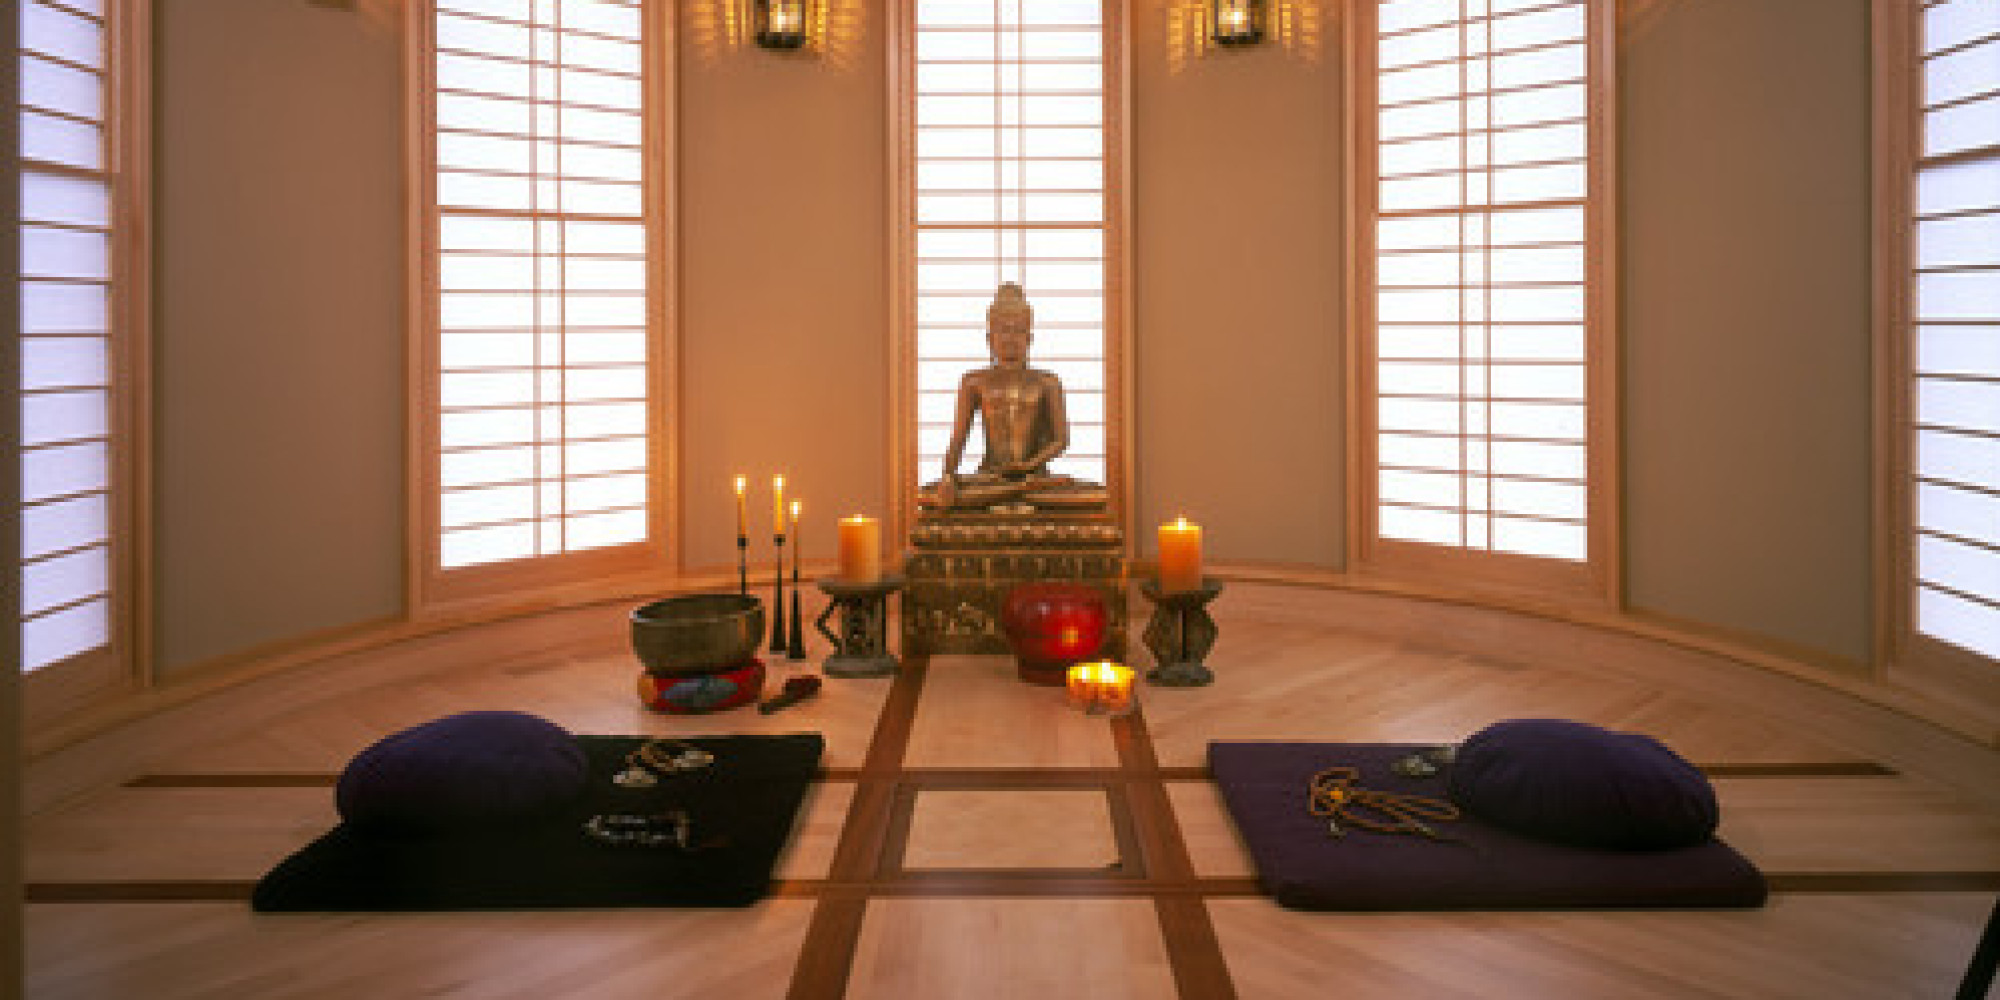 If you are planning a bedroom, make sure you think through the placement of the furniture and décor. 7 Spaces That Would Make Great Meditation Rooms (PHOTOS